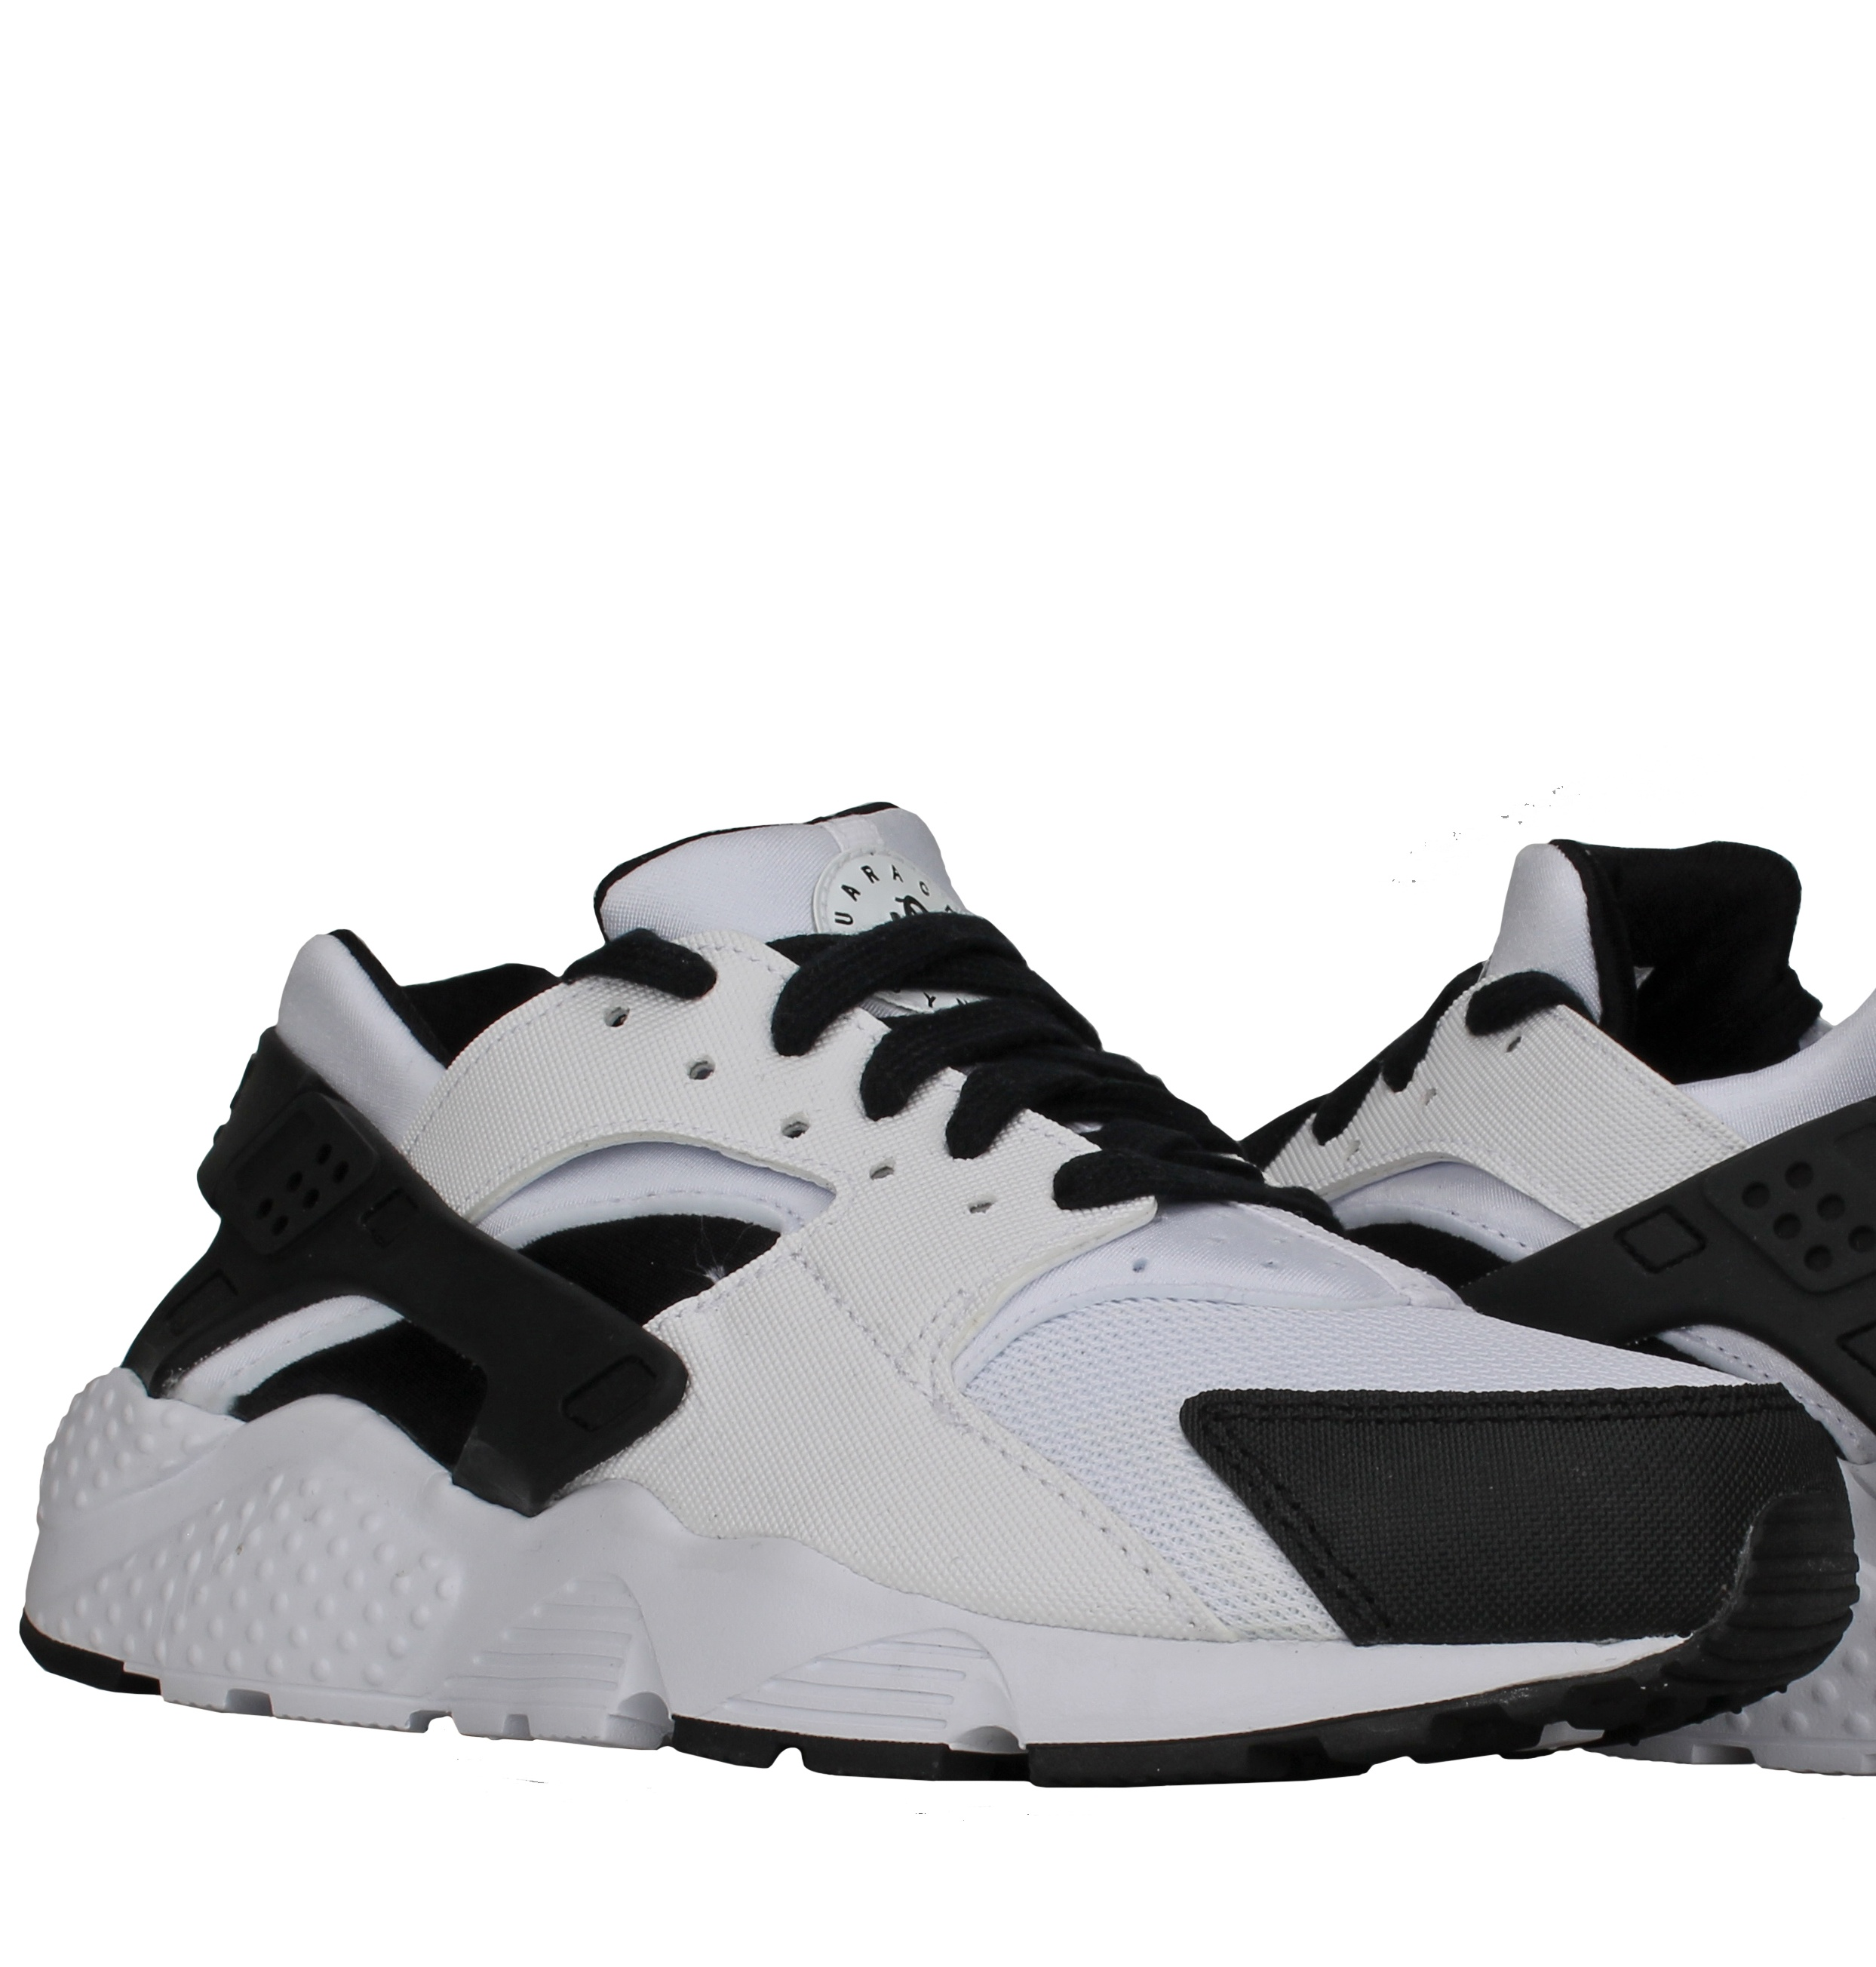 sale retailer 2350a 236f6 ... best price nike huarache run gs white black white big kids running  shoes 654275 15215 a863f